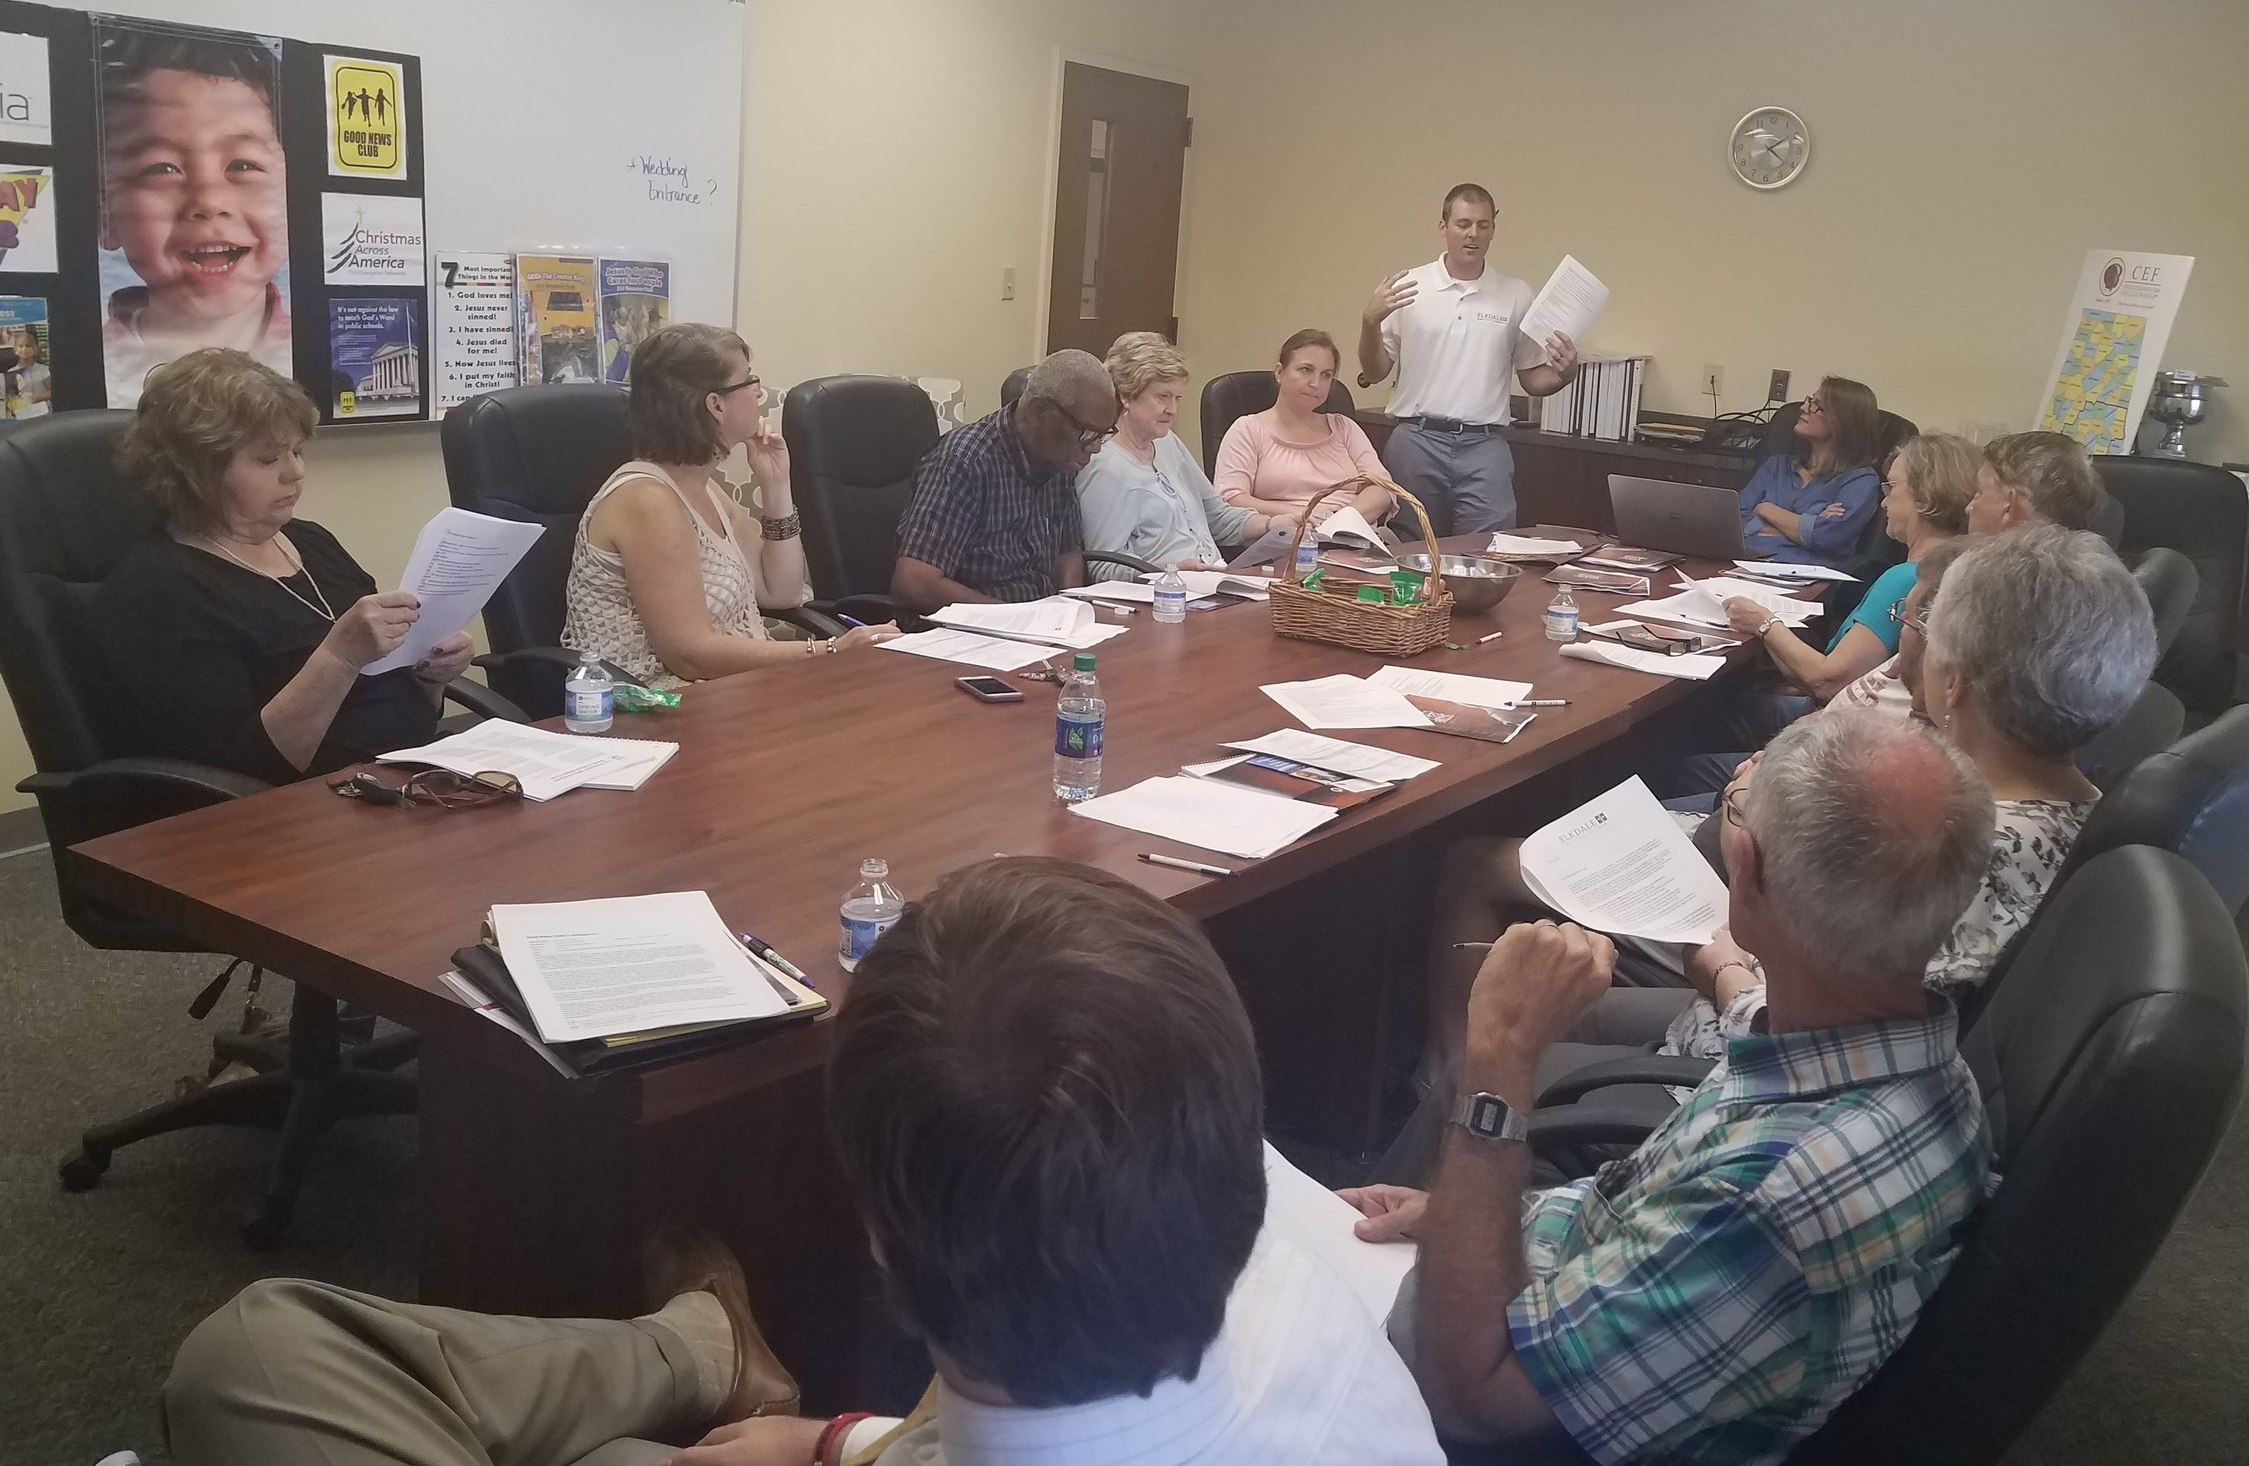 Jonathon Brown, of Elkdale Baptist Church in Selma, Alabama holds invited church leaders and members from the area to discuss starting new  Good News Club®  ministry in partnership with  CEF®  of Central Alabama.